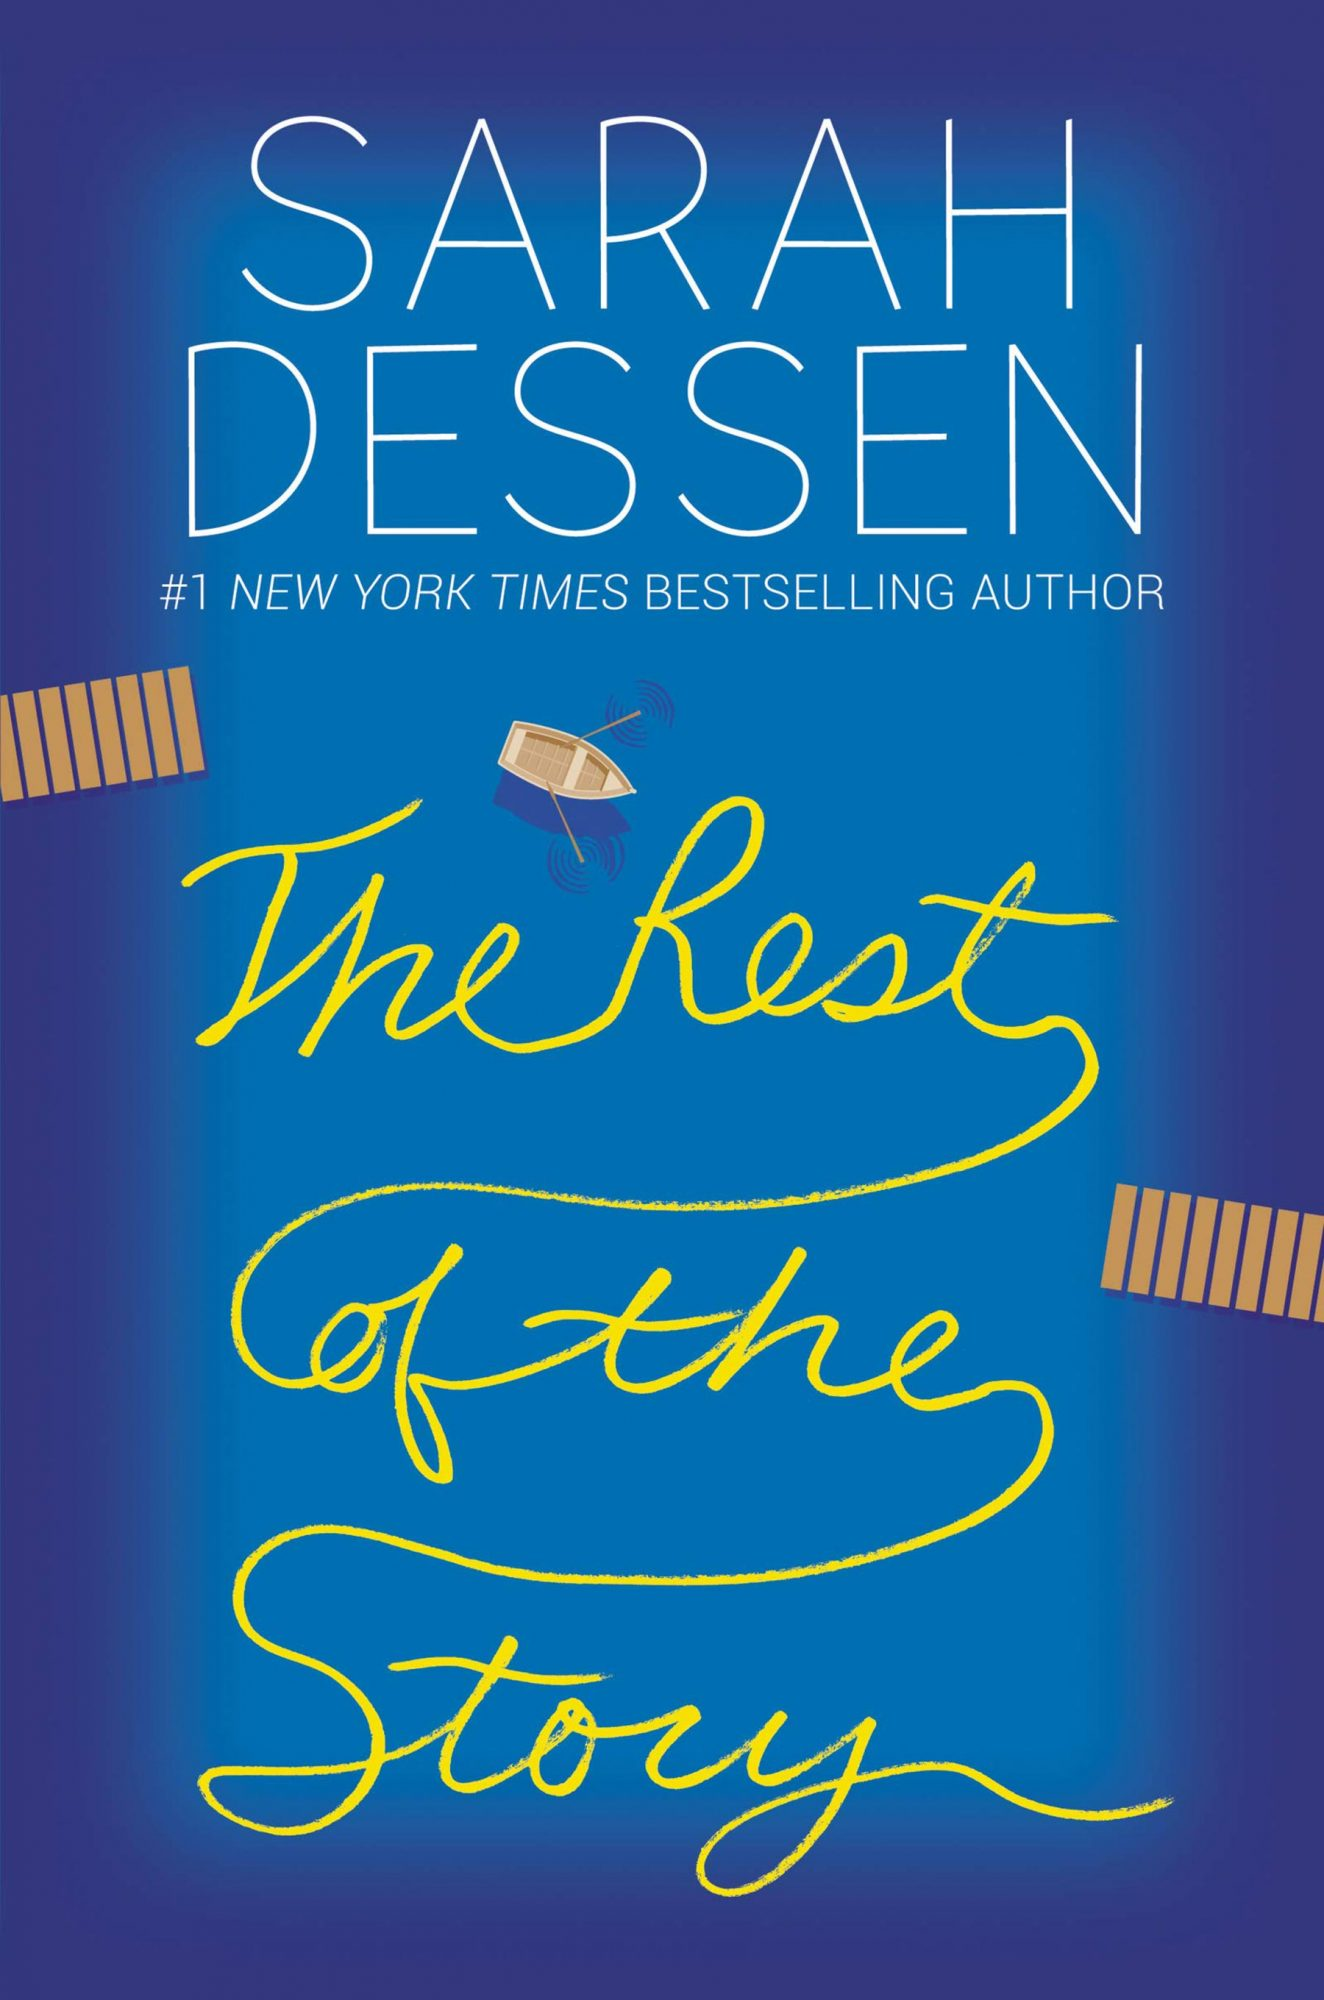 The Rest of the Story by Sarah DessenPublisher: Balzer + Bray